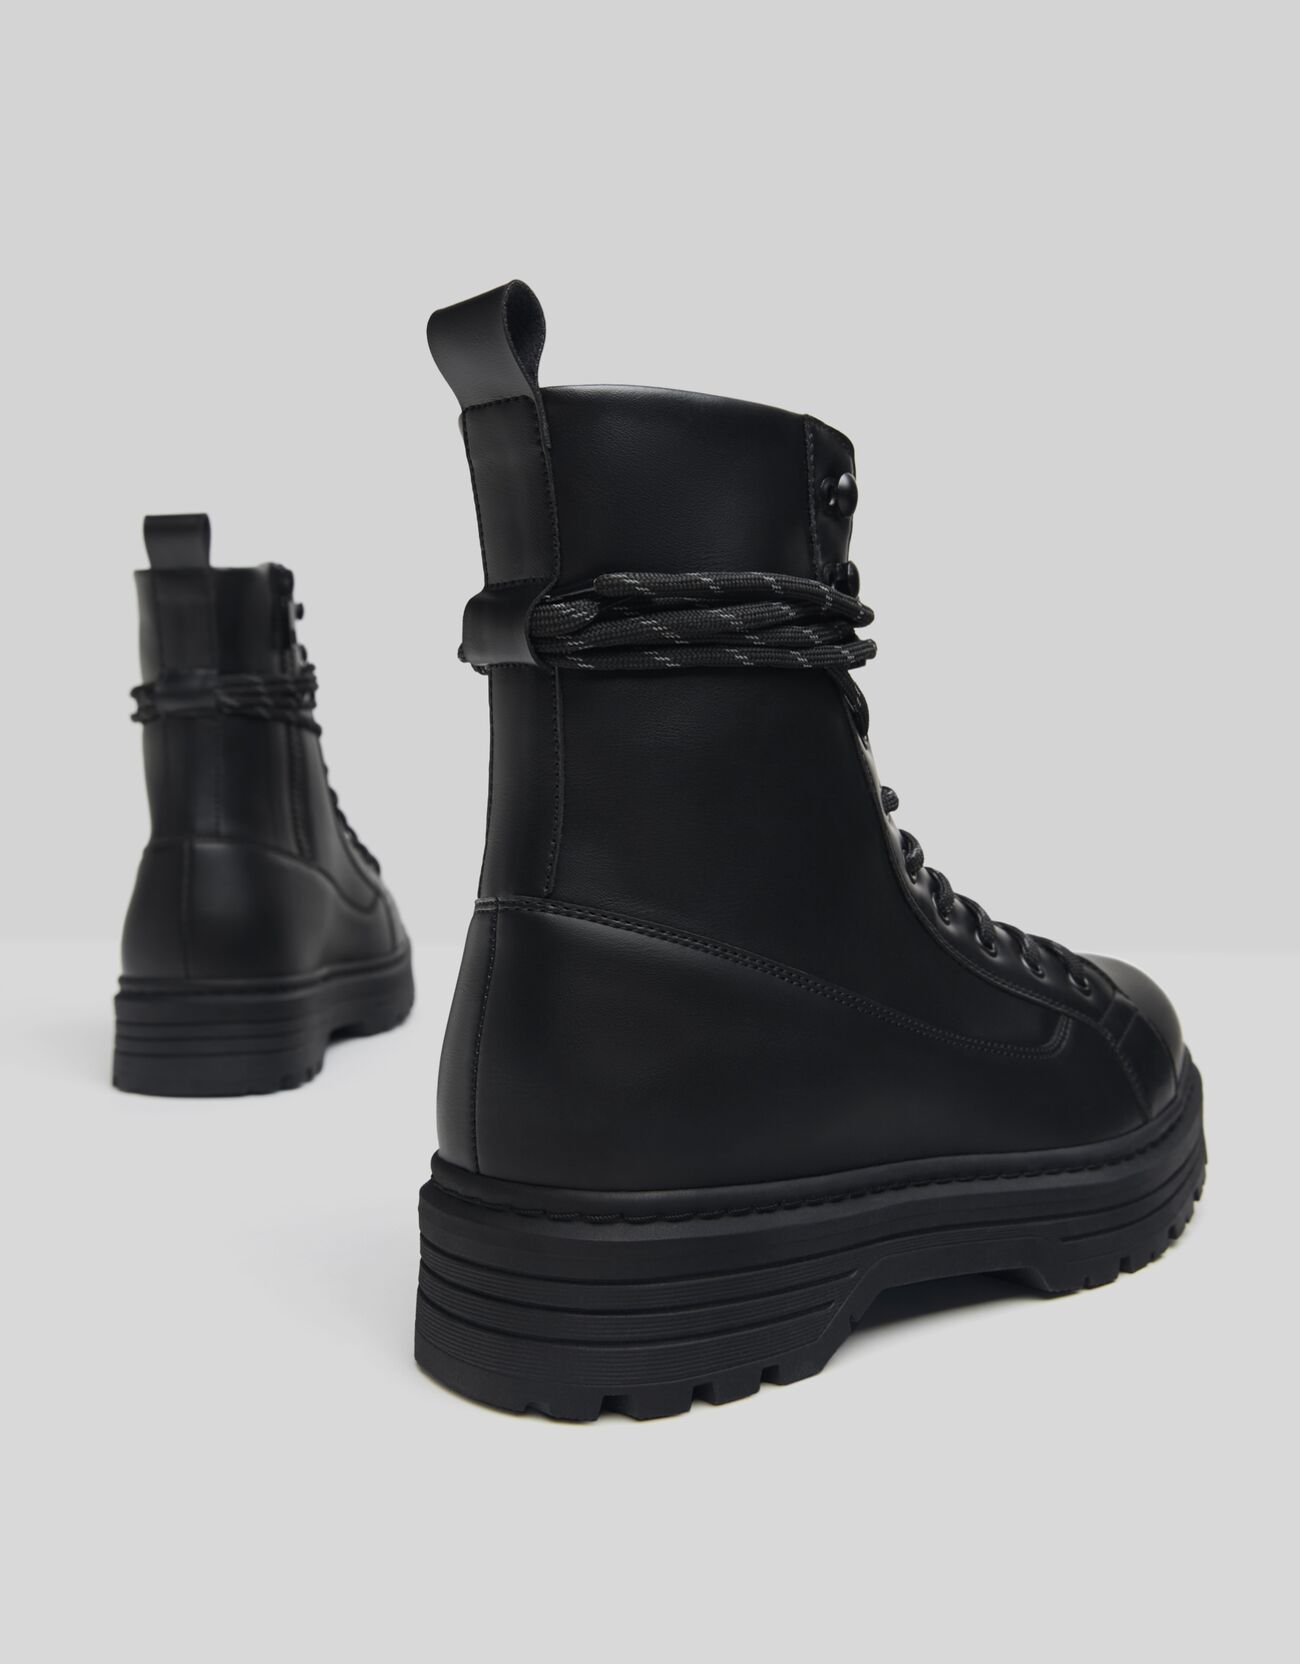 boots trending from pull and bear